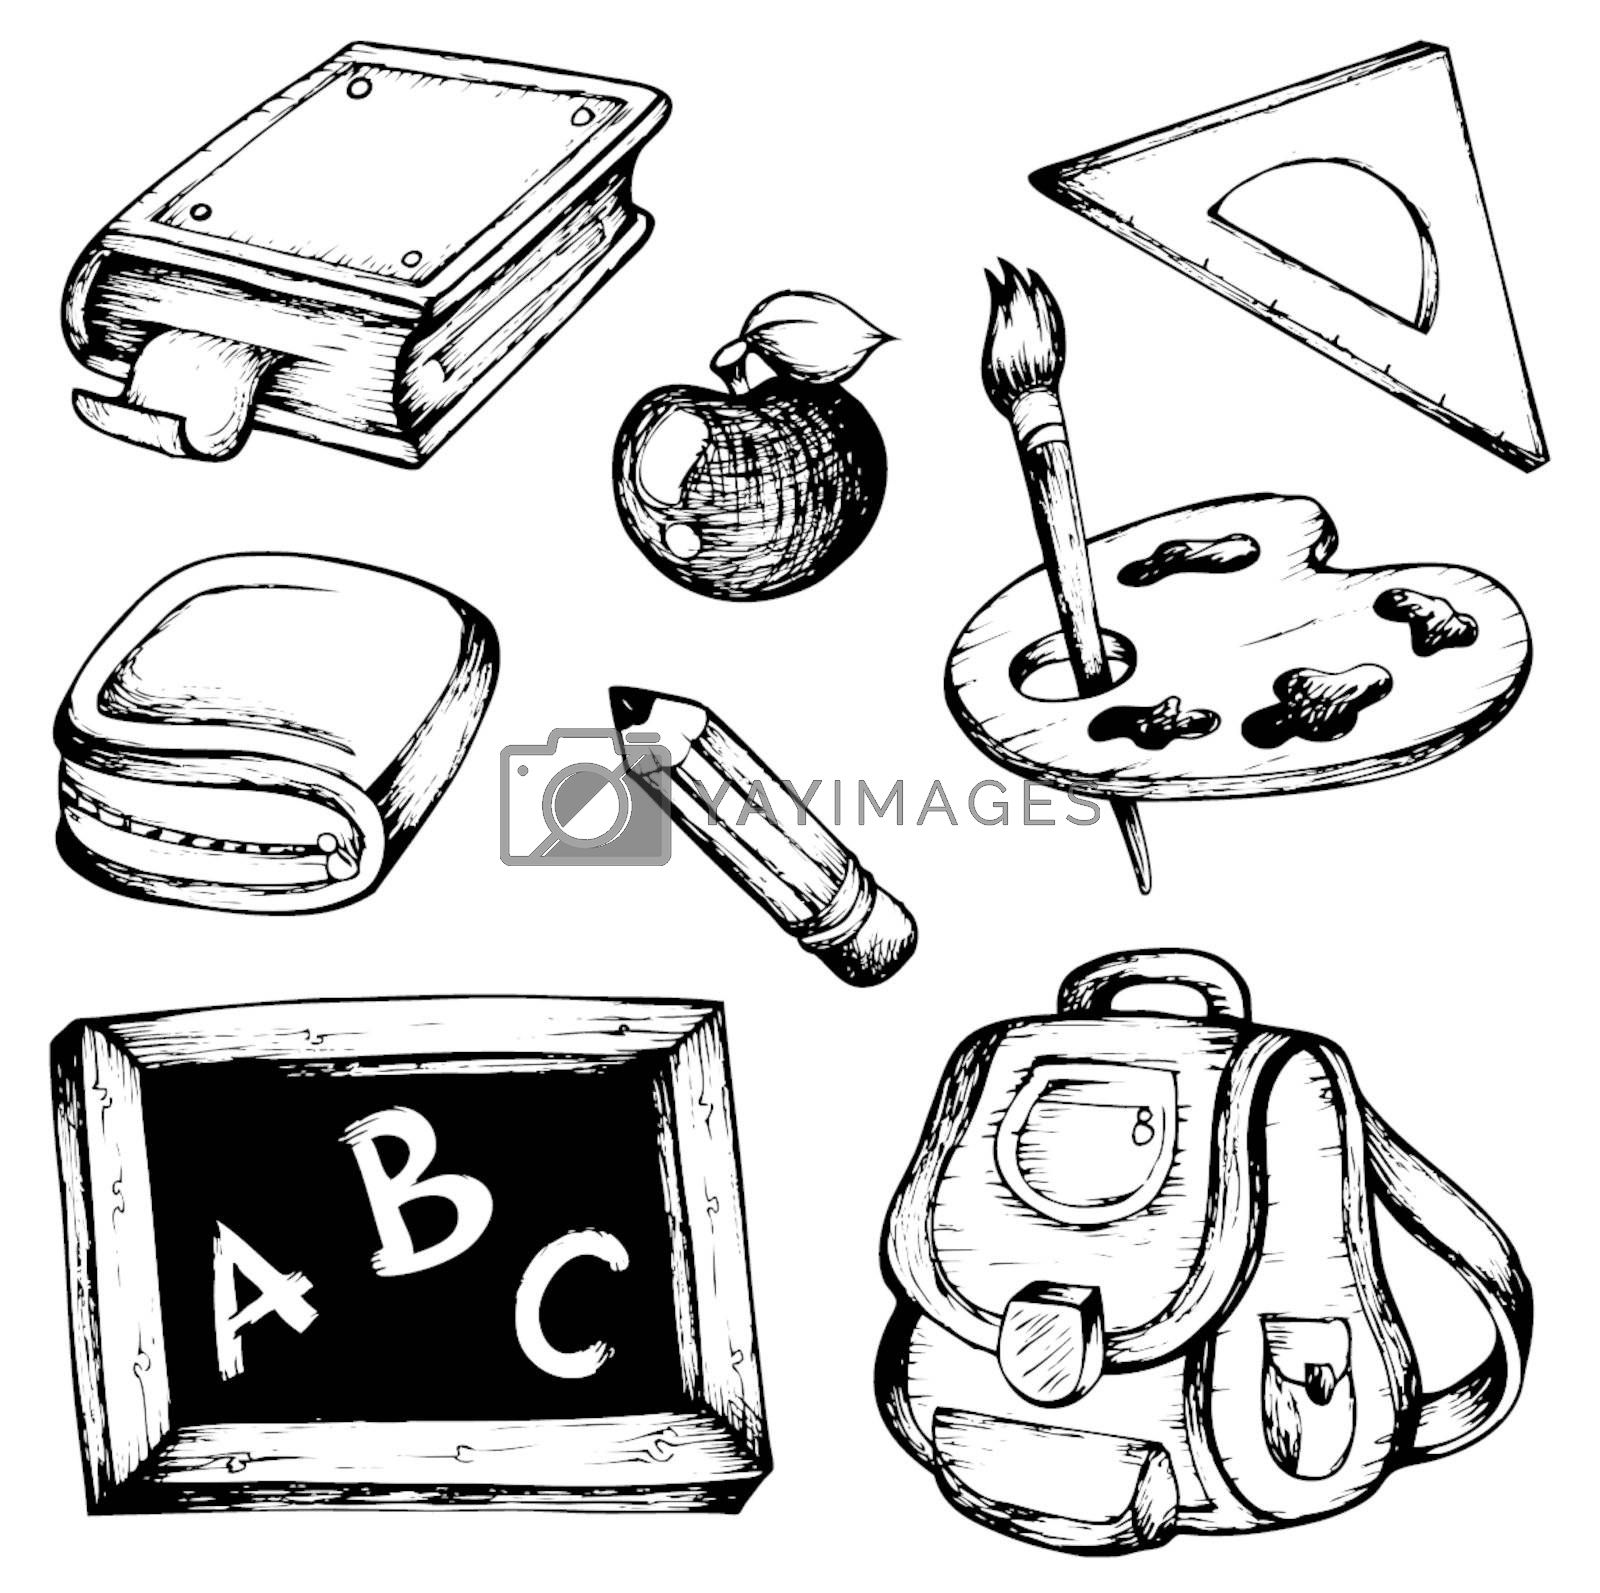 School drawings collection 1 - vector illustration.